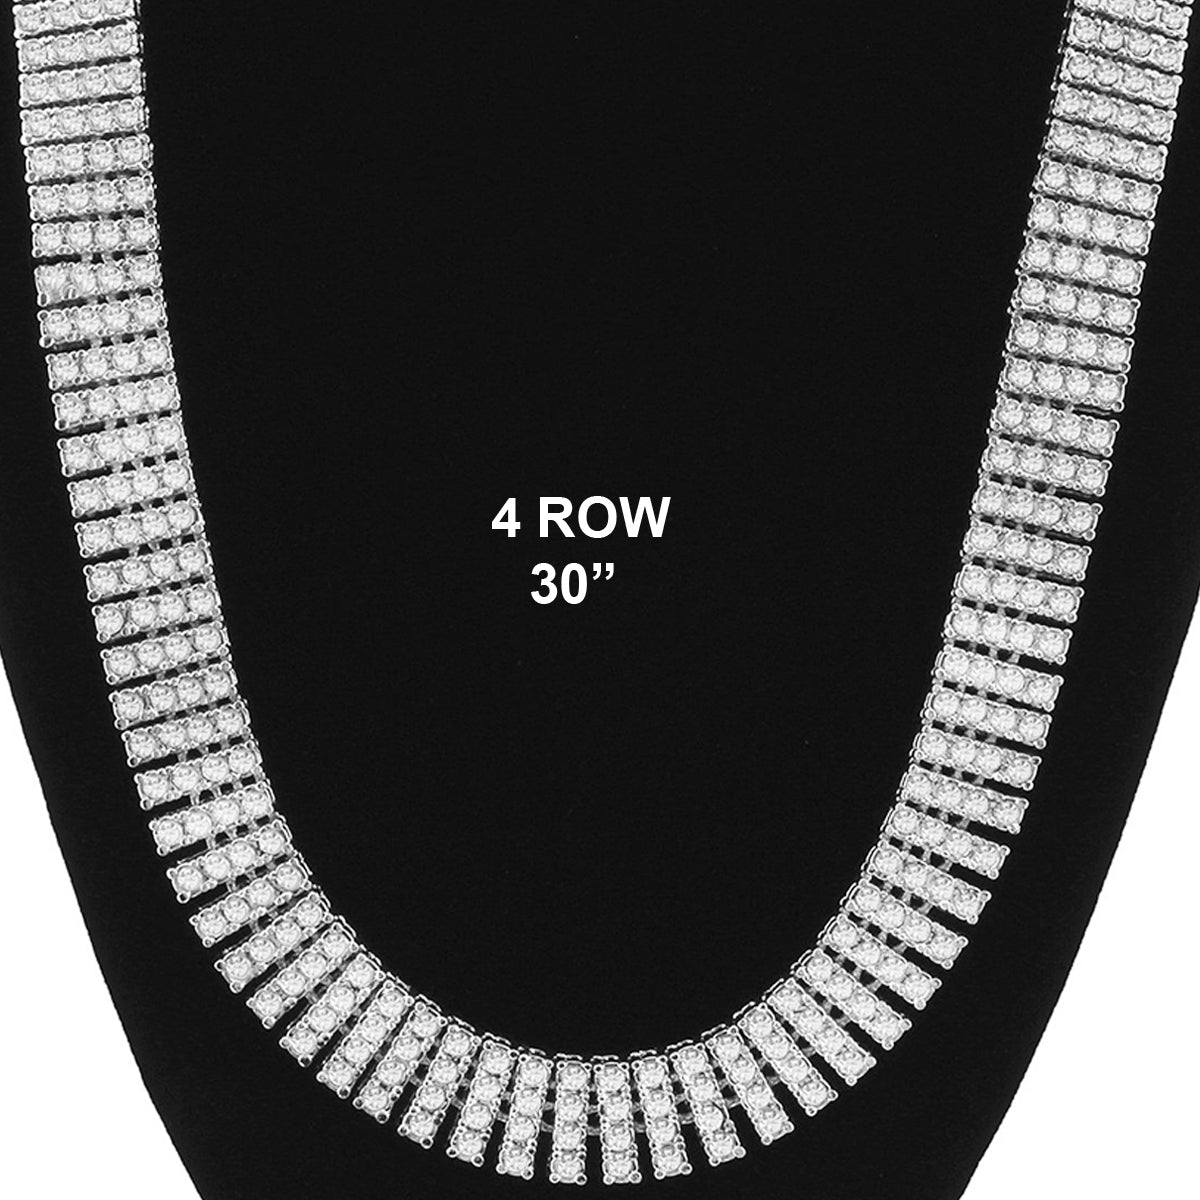 4 ROW ICED-OUT TENNIS SILVER CHAIN 30""